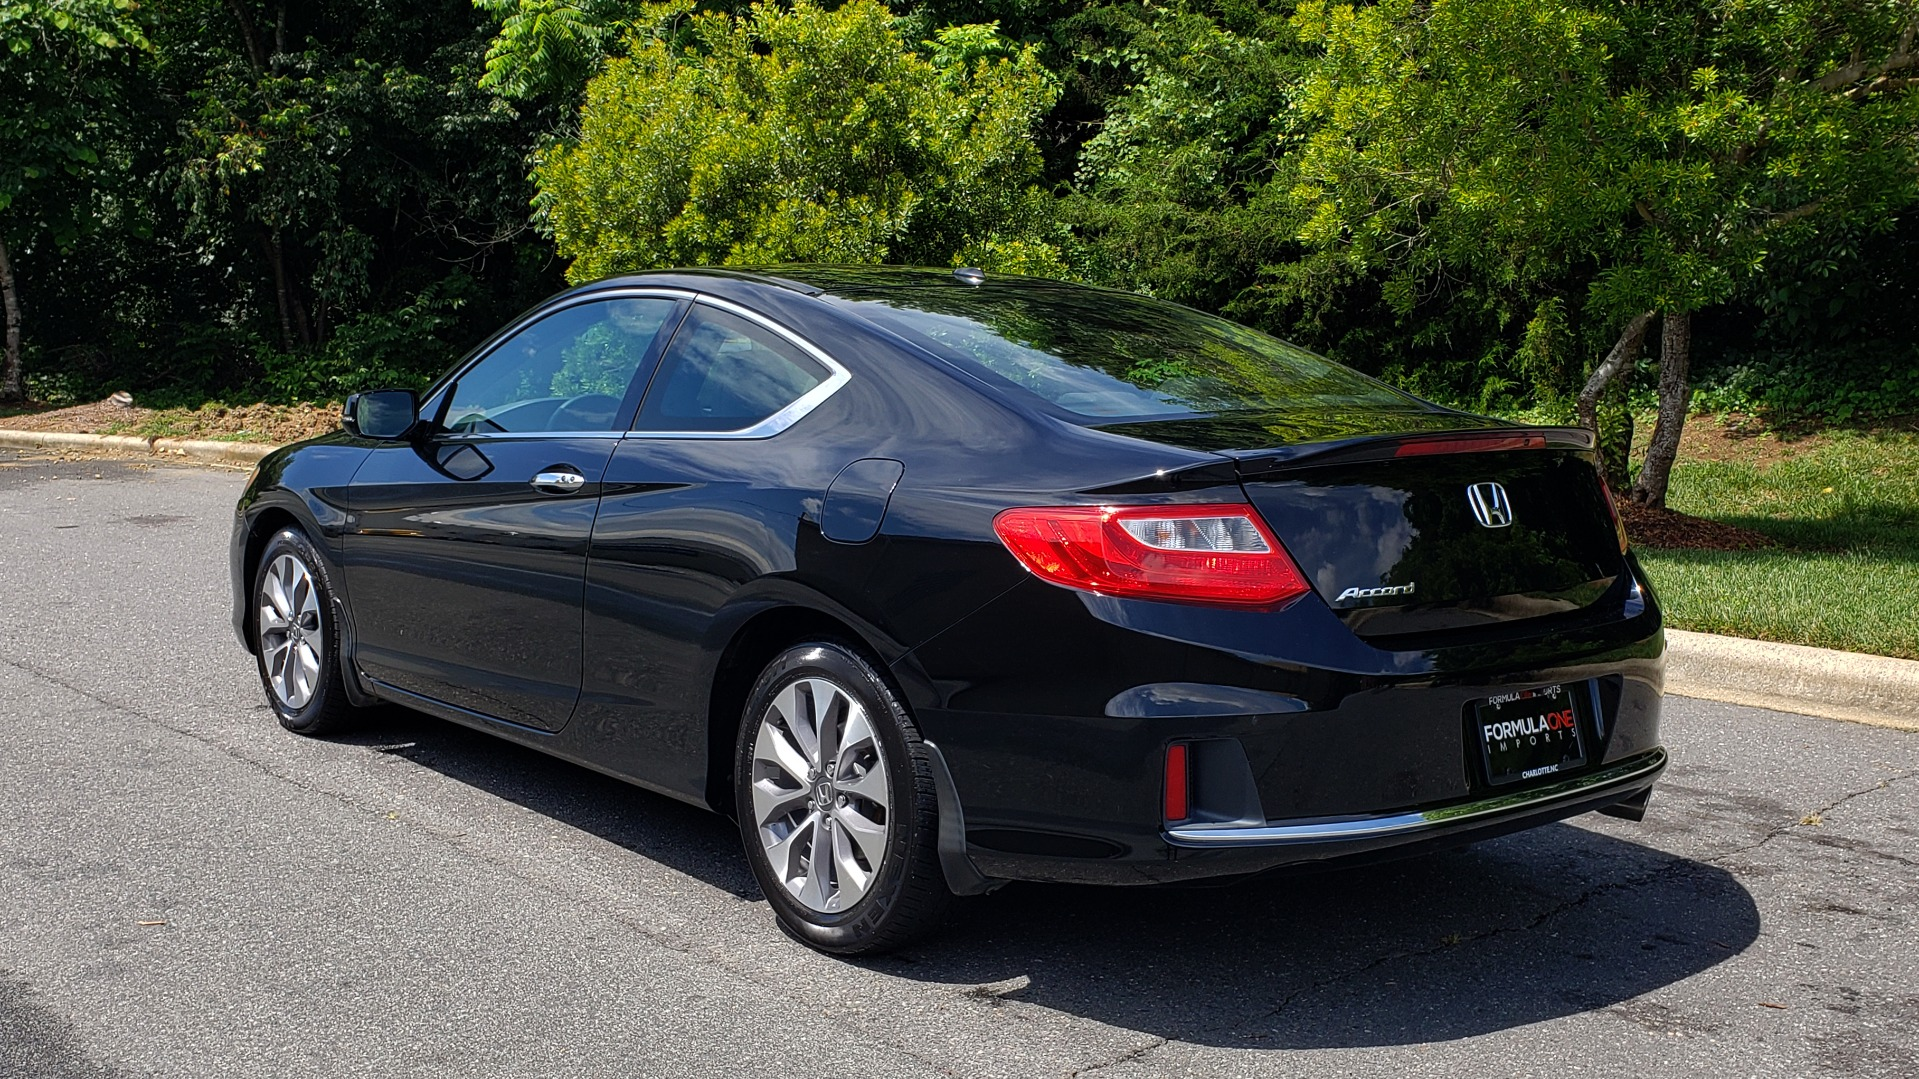 Used 2014 Honda ACCORD COUPE EX-L / 4-CYL / AUTO / SUNROOF / LEATHER / HEATED SEATS for sale Sold at Formula Imports in Charlotte NC 28227 3